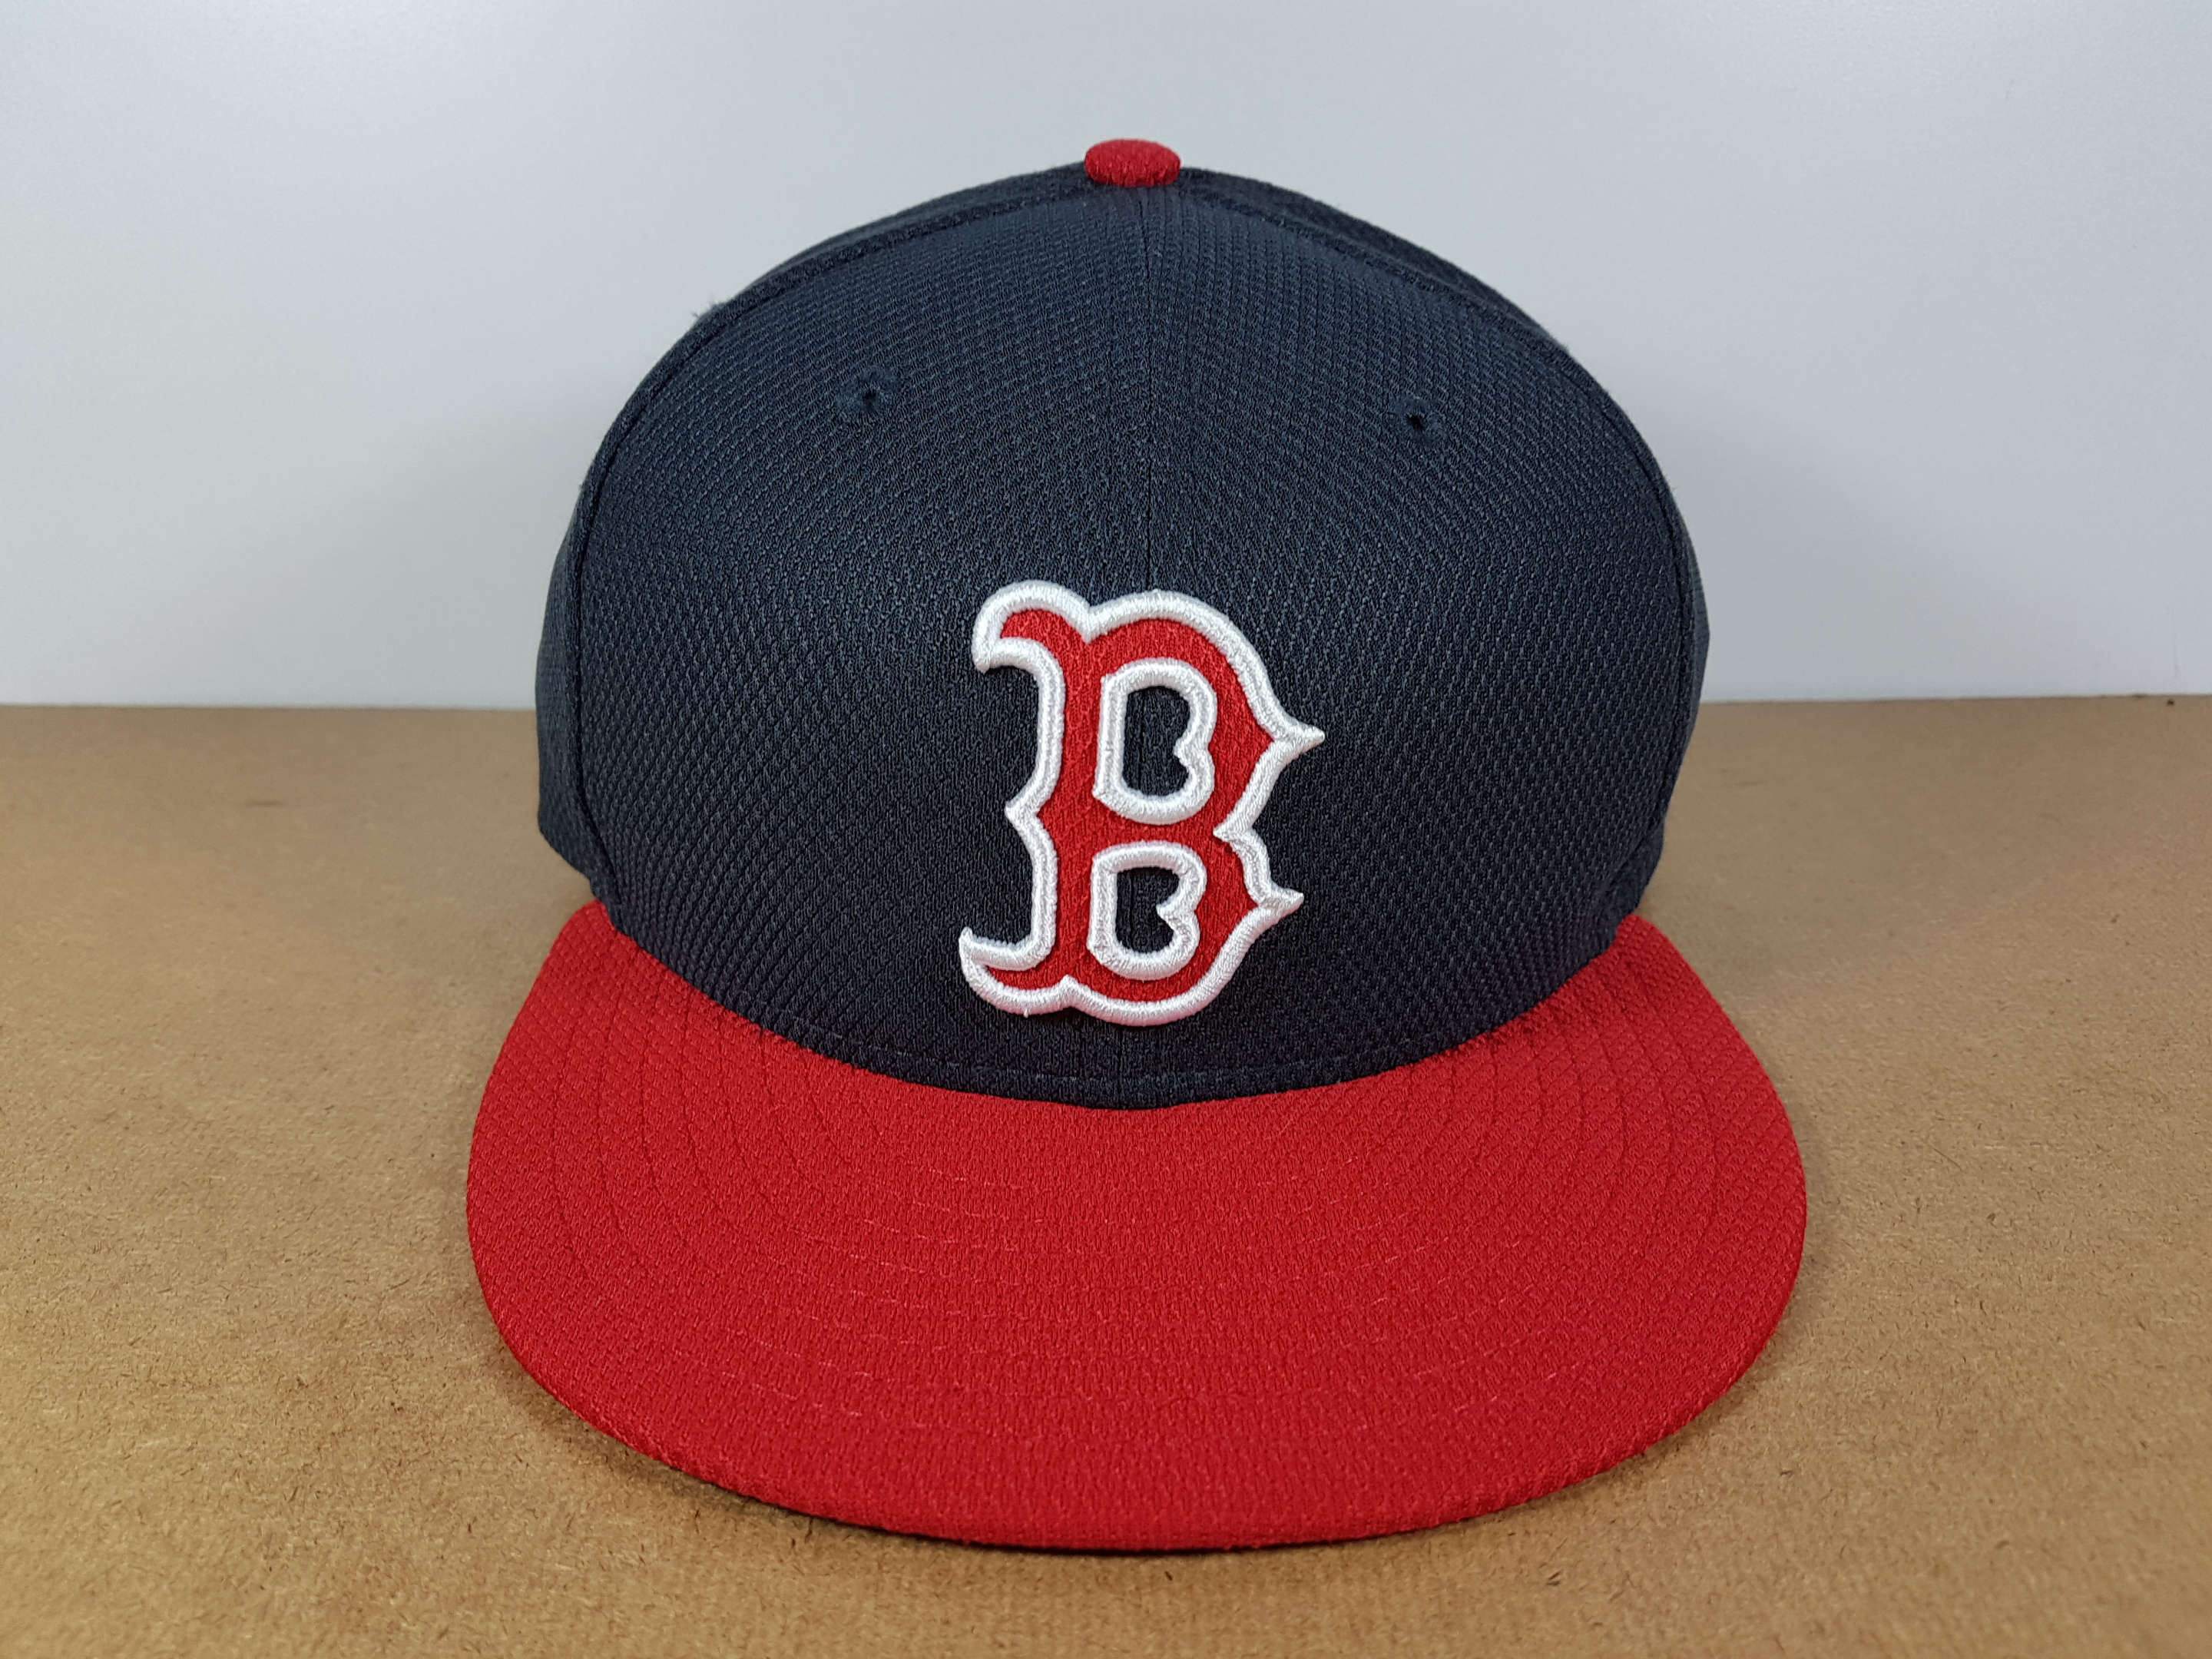 New Era MLB ทีม Boston Redsox ผ้า Daimond Era ไซส์ 7 3/8 ( 58.7cm )